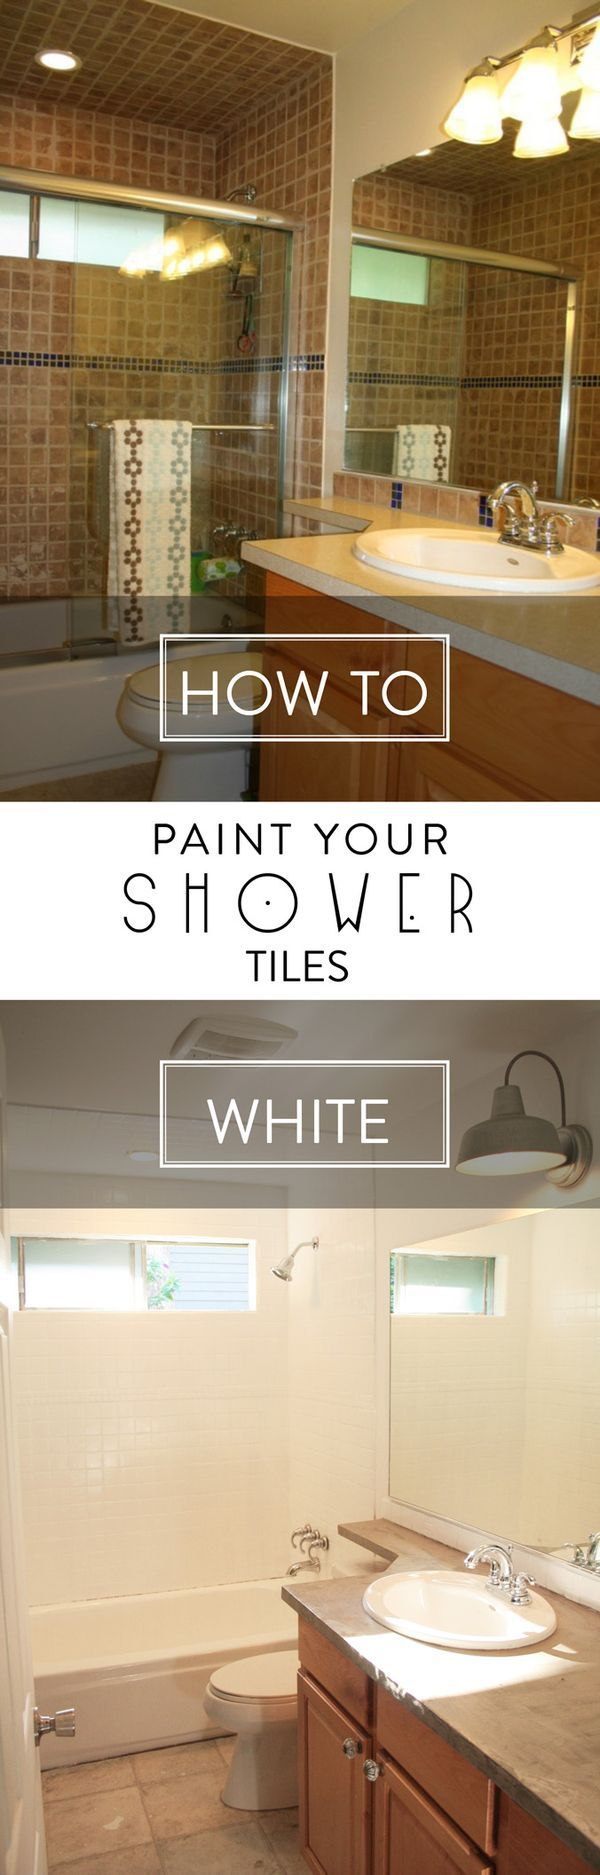 AWESOME!  Learn How to Paint Shower Tiles.  You can update your shower on a budget.  Full tutorial by Petite Modern Life for Designer Trapped in a Lawyer's Body.